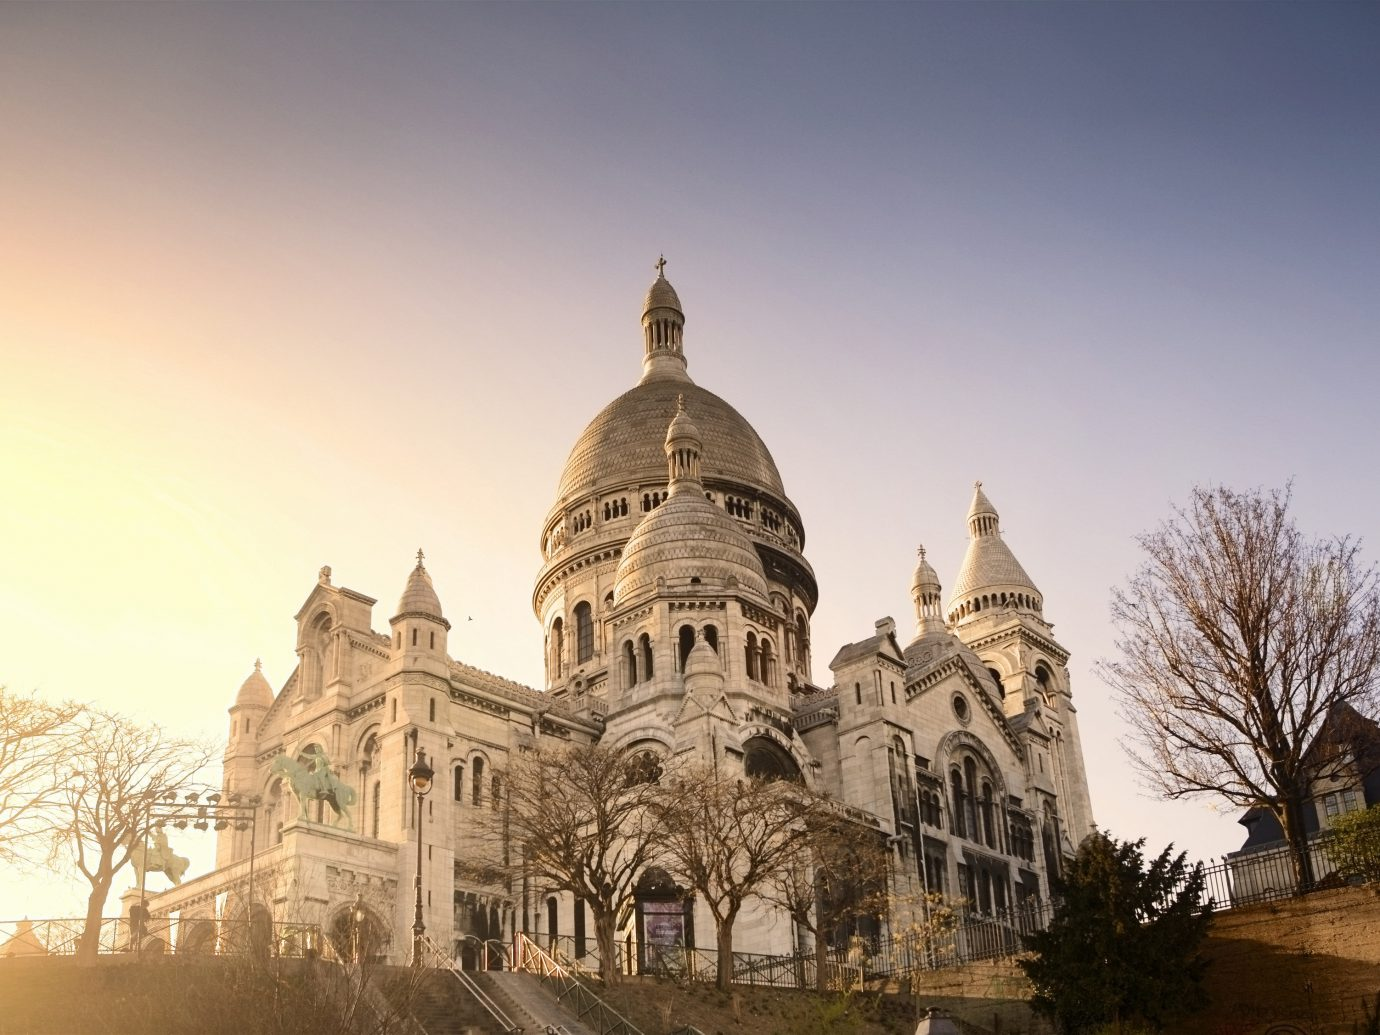 Trip Ideas outdoor sky building landmark old place of worship cathedral Church monastery spire day